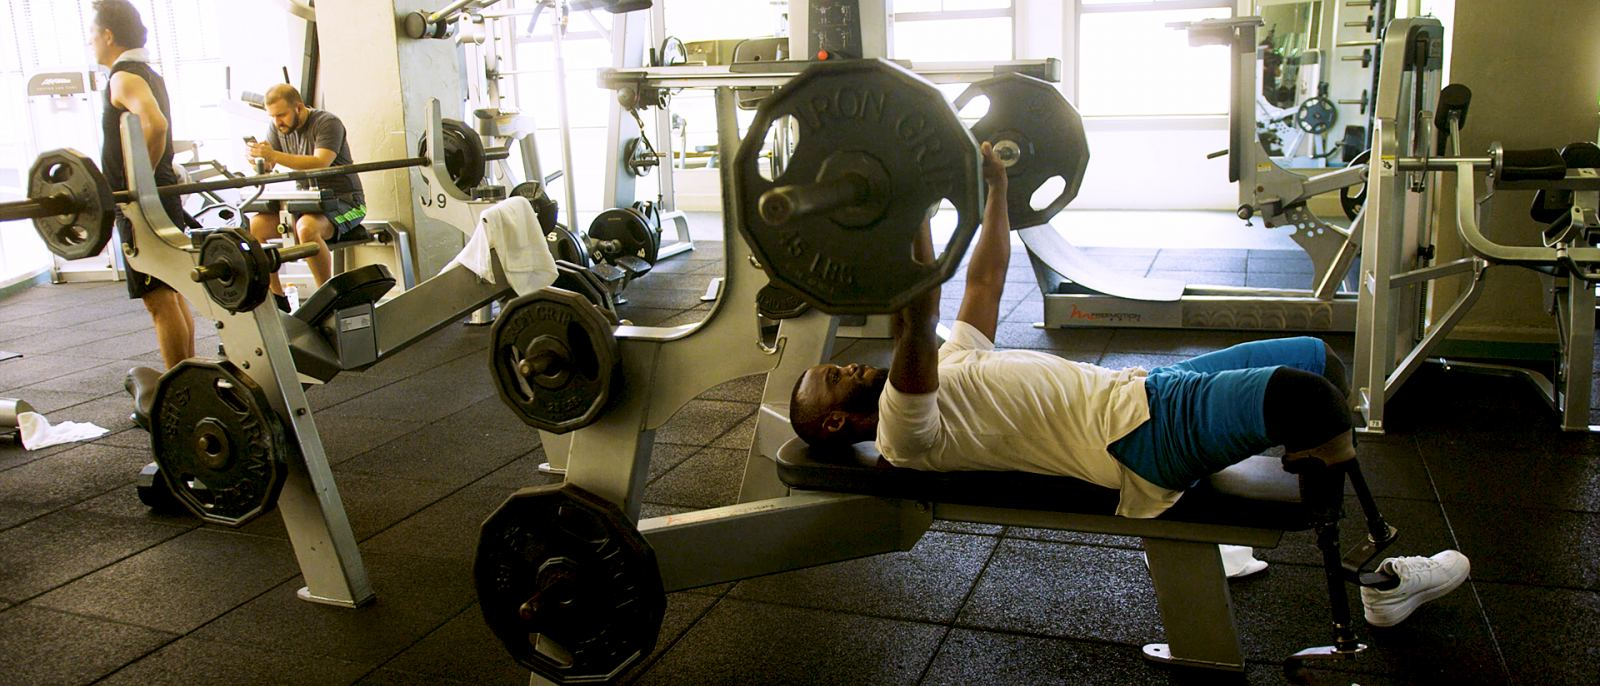 Blake Leeper lifting weights at Los Angeles Athletic Club